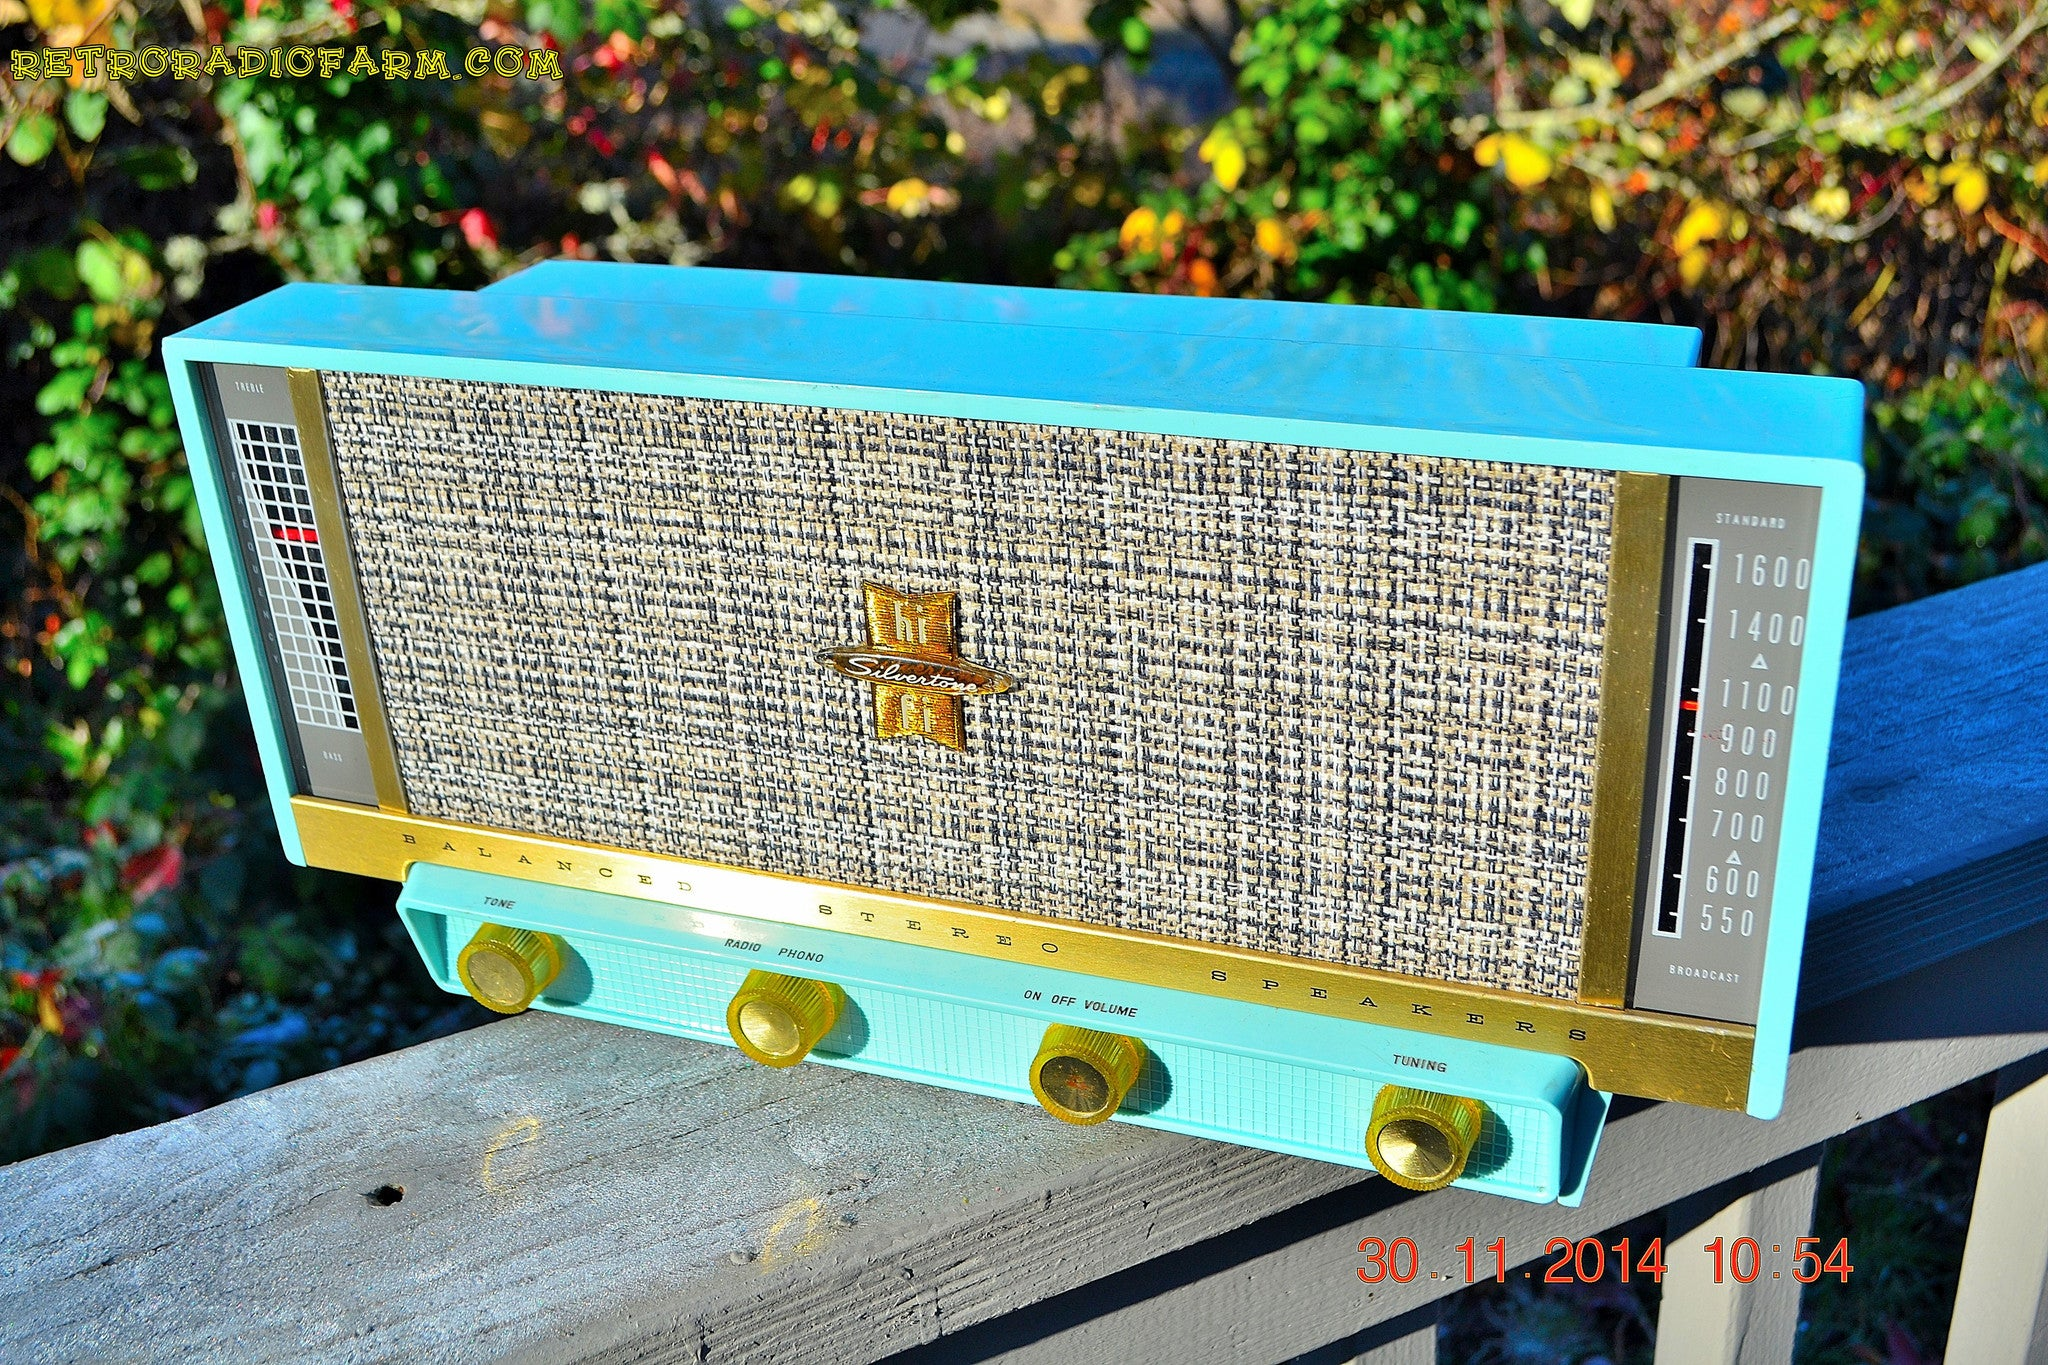 SOLD! - April 13, 2015 - MP3 READY - PLAN 9 FROM OUTER SPACE Ice Blue Retro Jetsons Vintage 1957 Silvertone Model 13 AM Tube Radio Totally Restored! - [product_type} - Silvertone - Retro Radio Farm